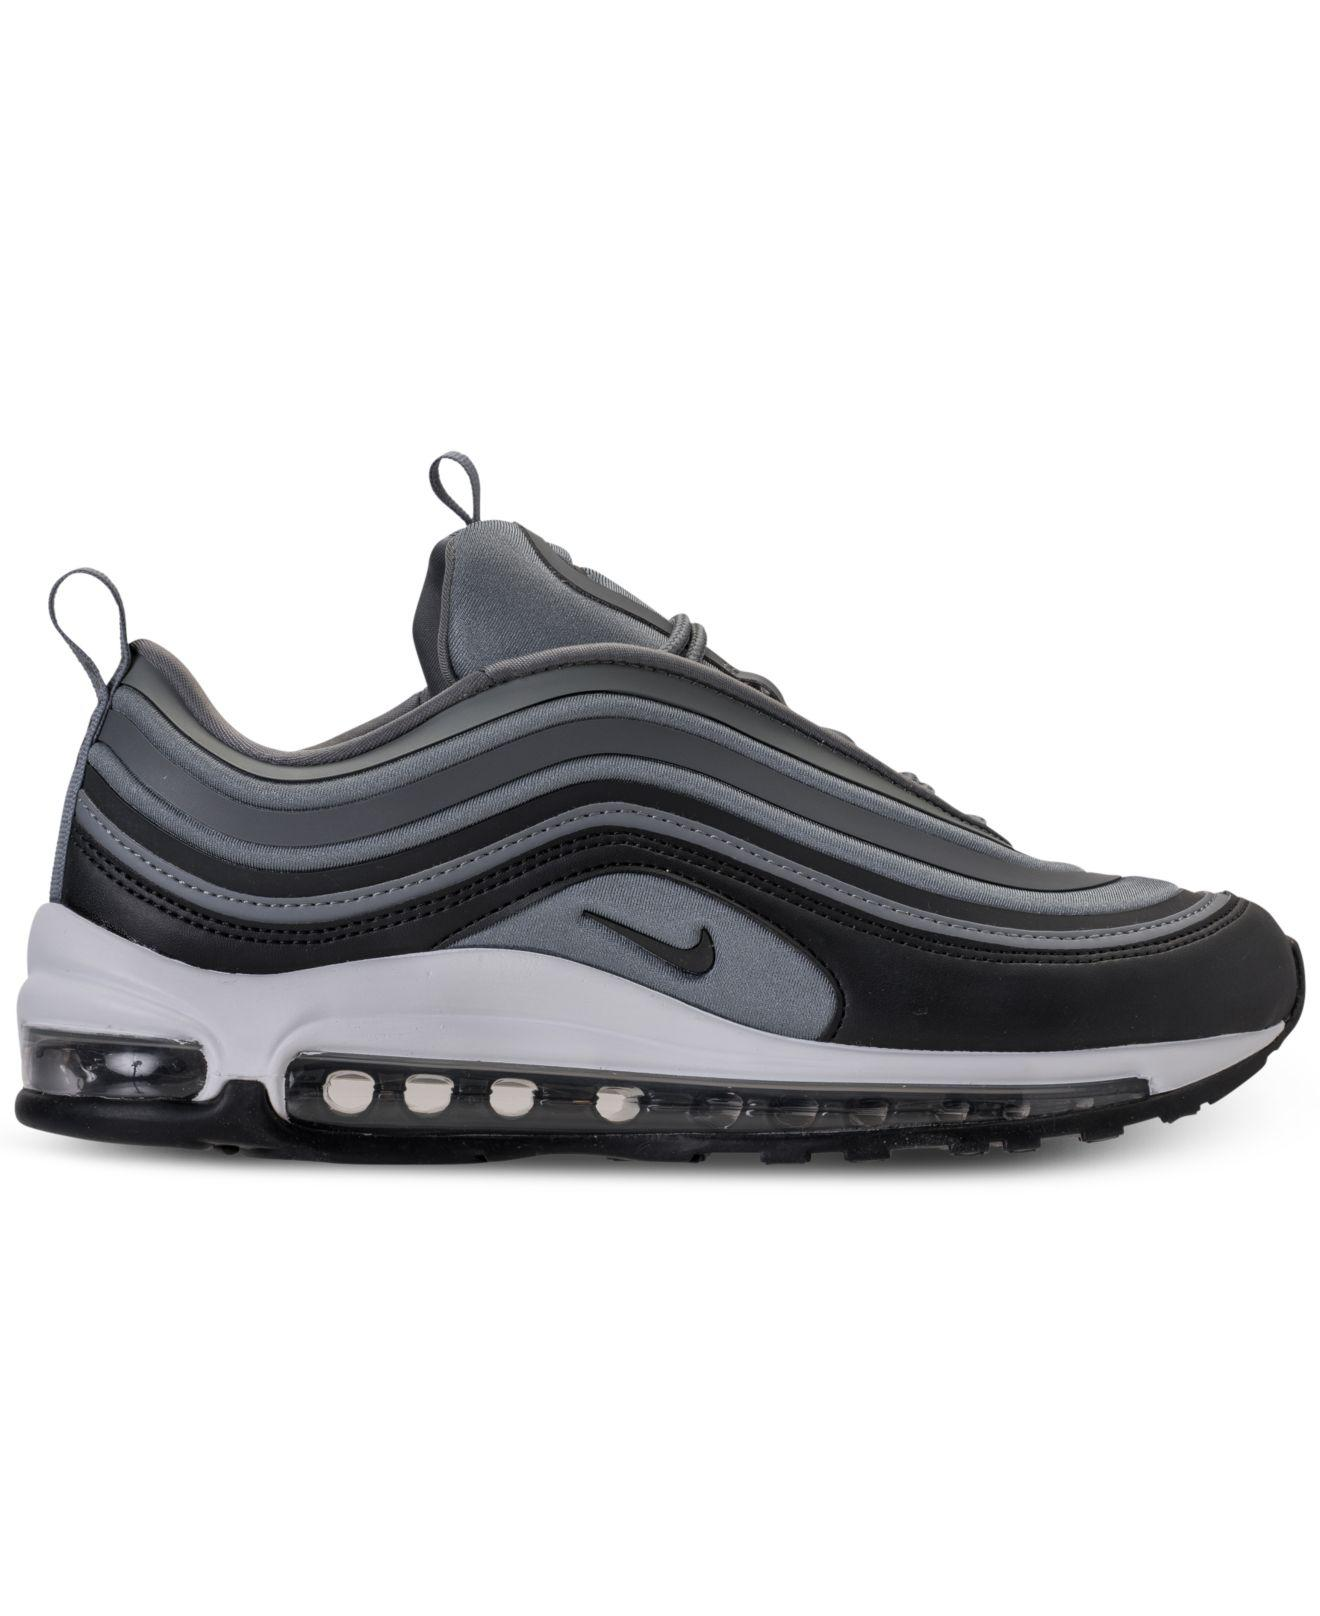 5dec21919e ... new style lyst nike air max 97 ul 17 casual sneakers from finish line  in gray